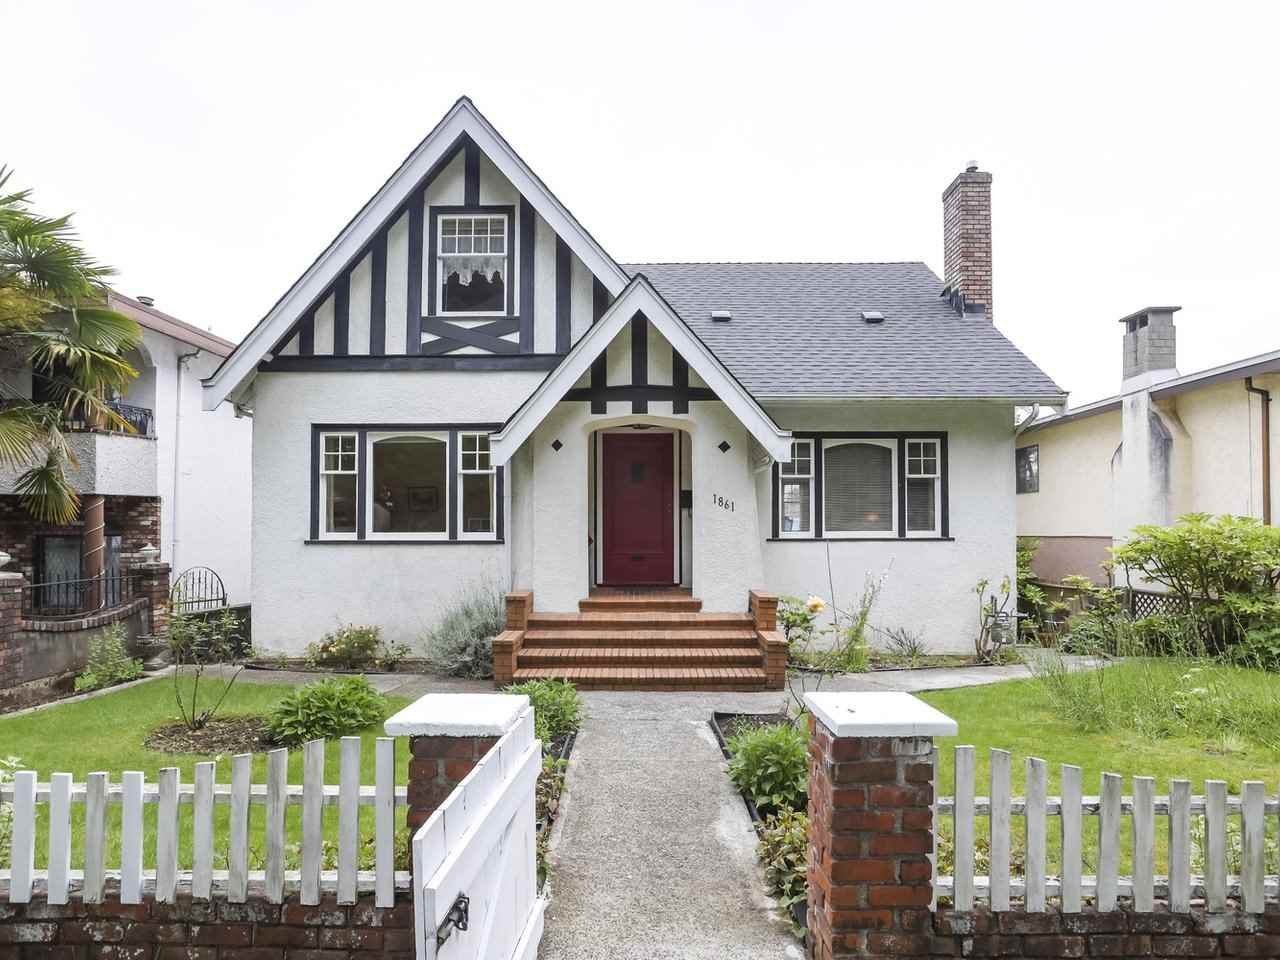 Main Photo: 1861 E 35TH Avenue in Vancouver: Victoria VE House for sale (Vancouver East)  : MLS®# R2463149